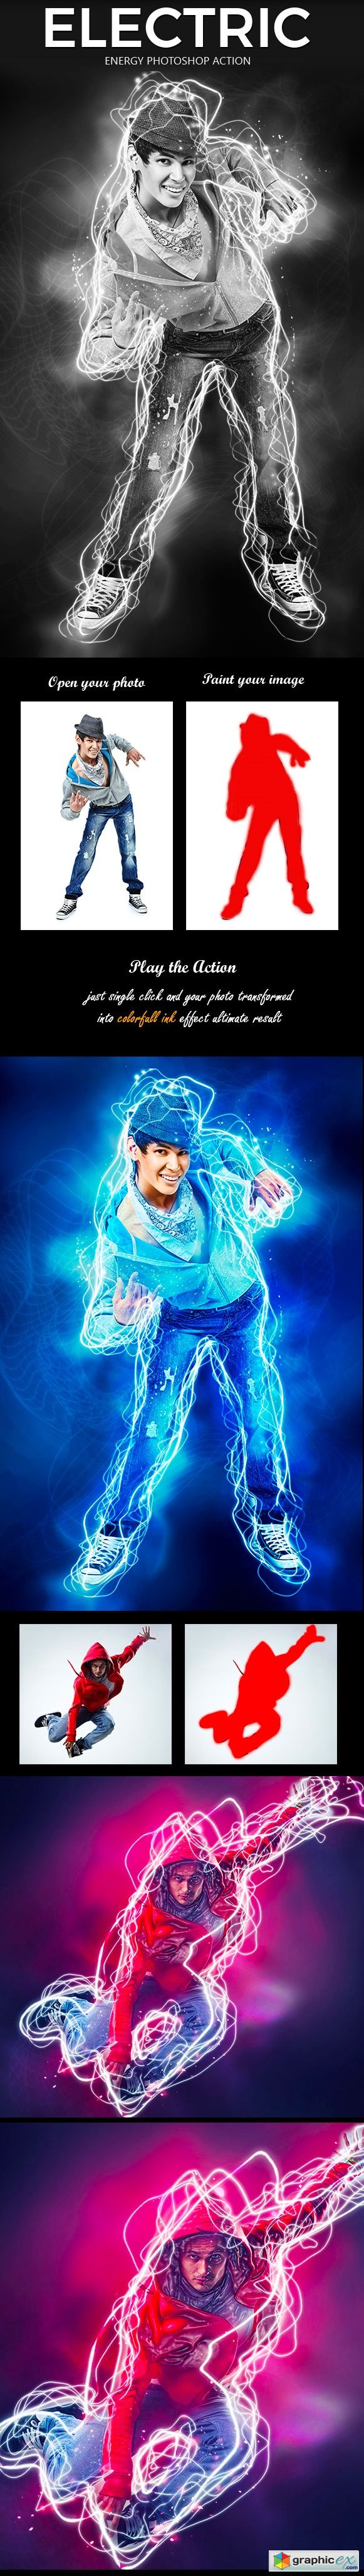 Electric Energy Photoshop Action 20845833